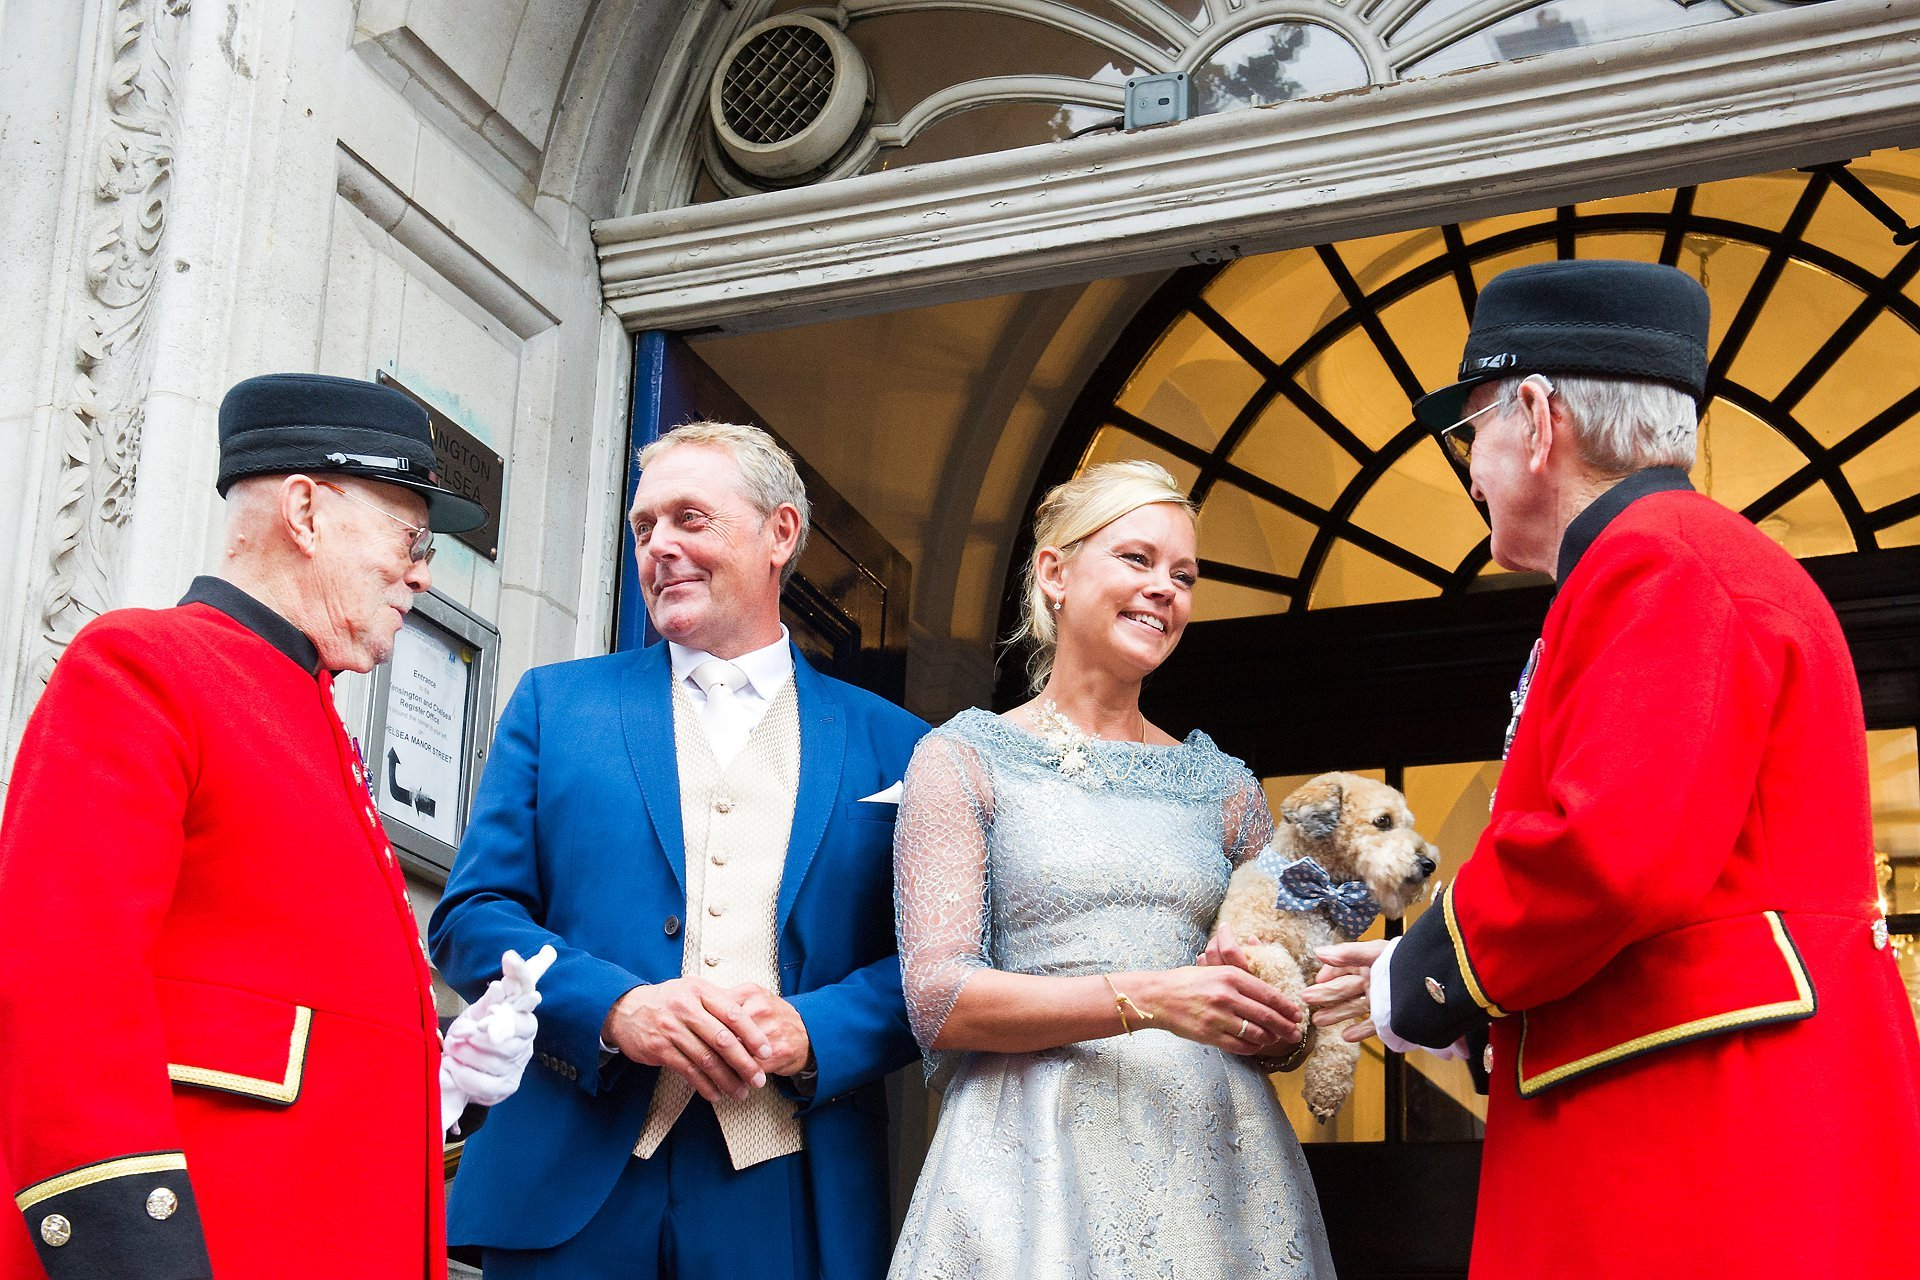 chelsea registry office wedding photography with a bride and groom and two chelsea pensioners on the steps after their civil wedding ceremony